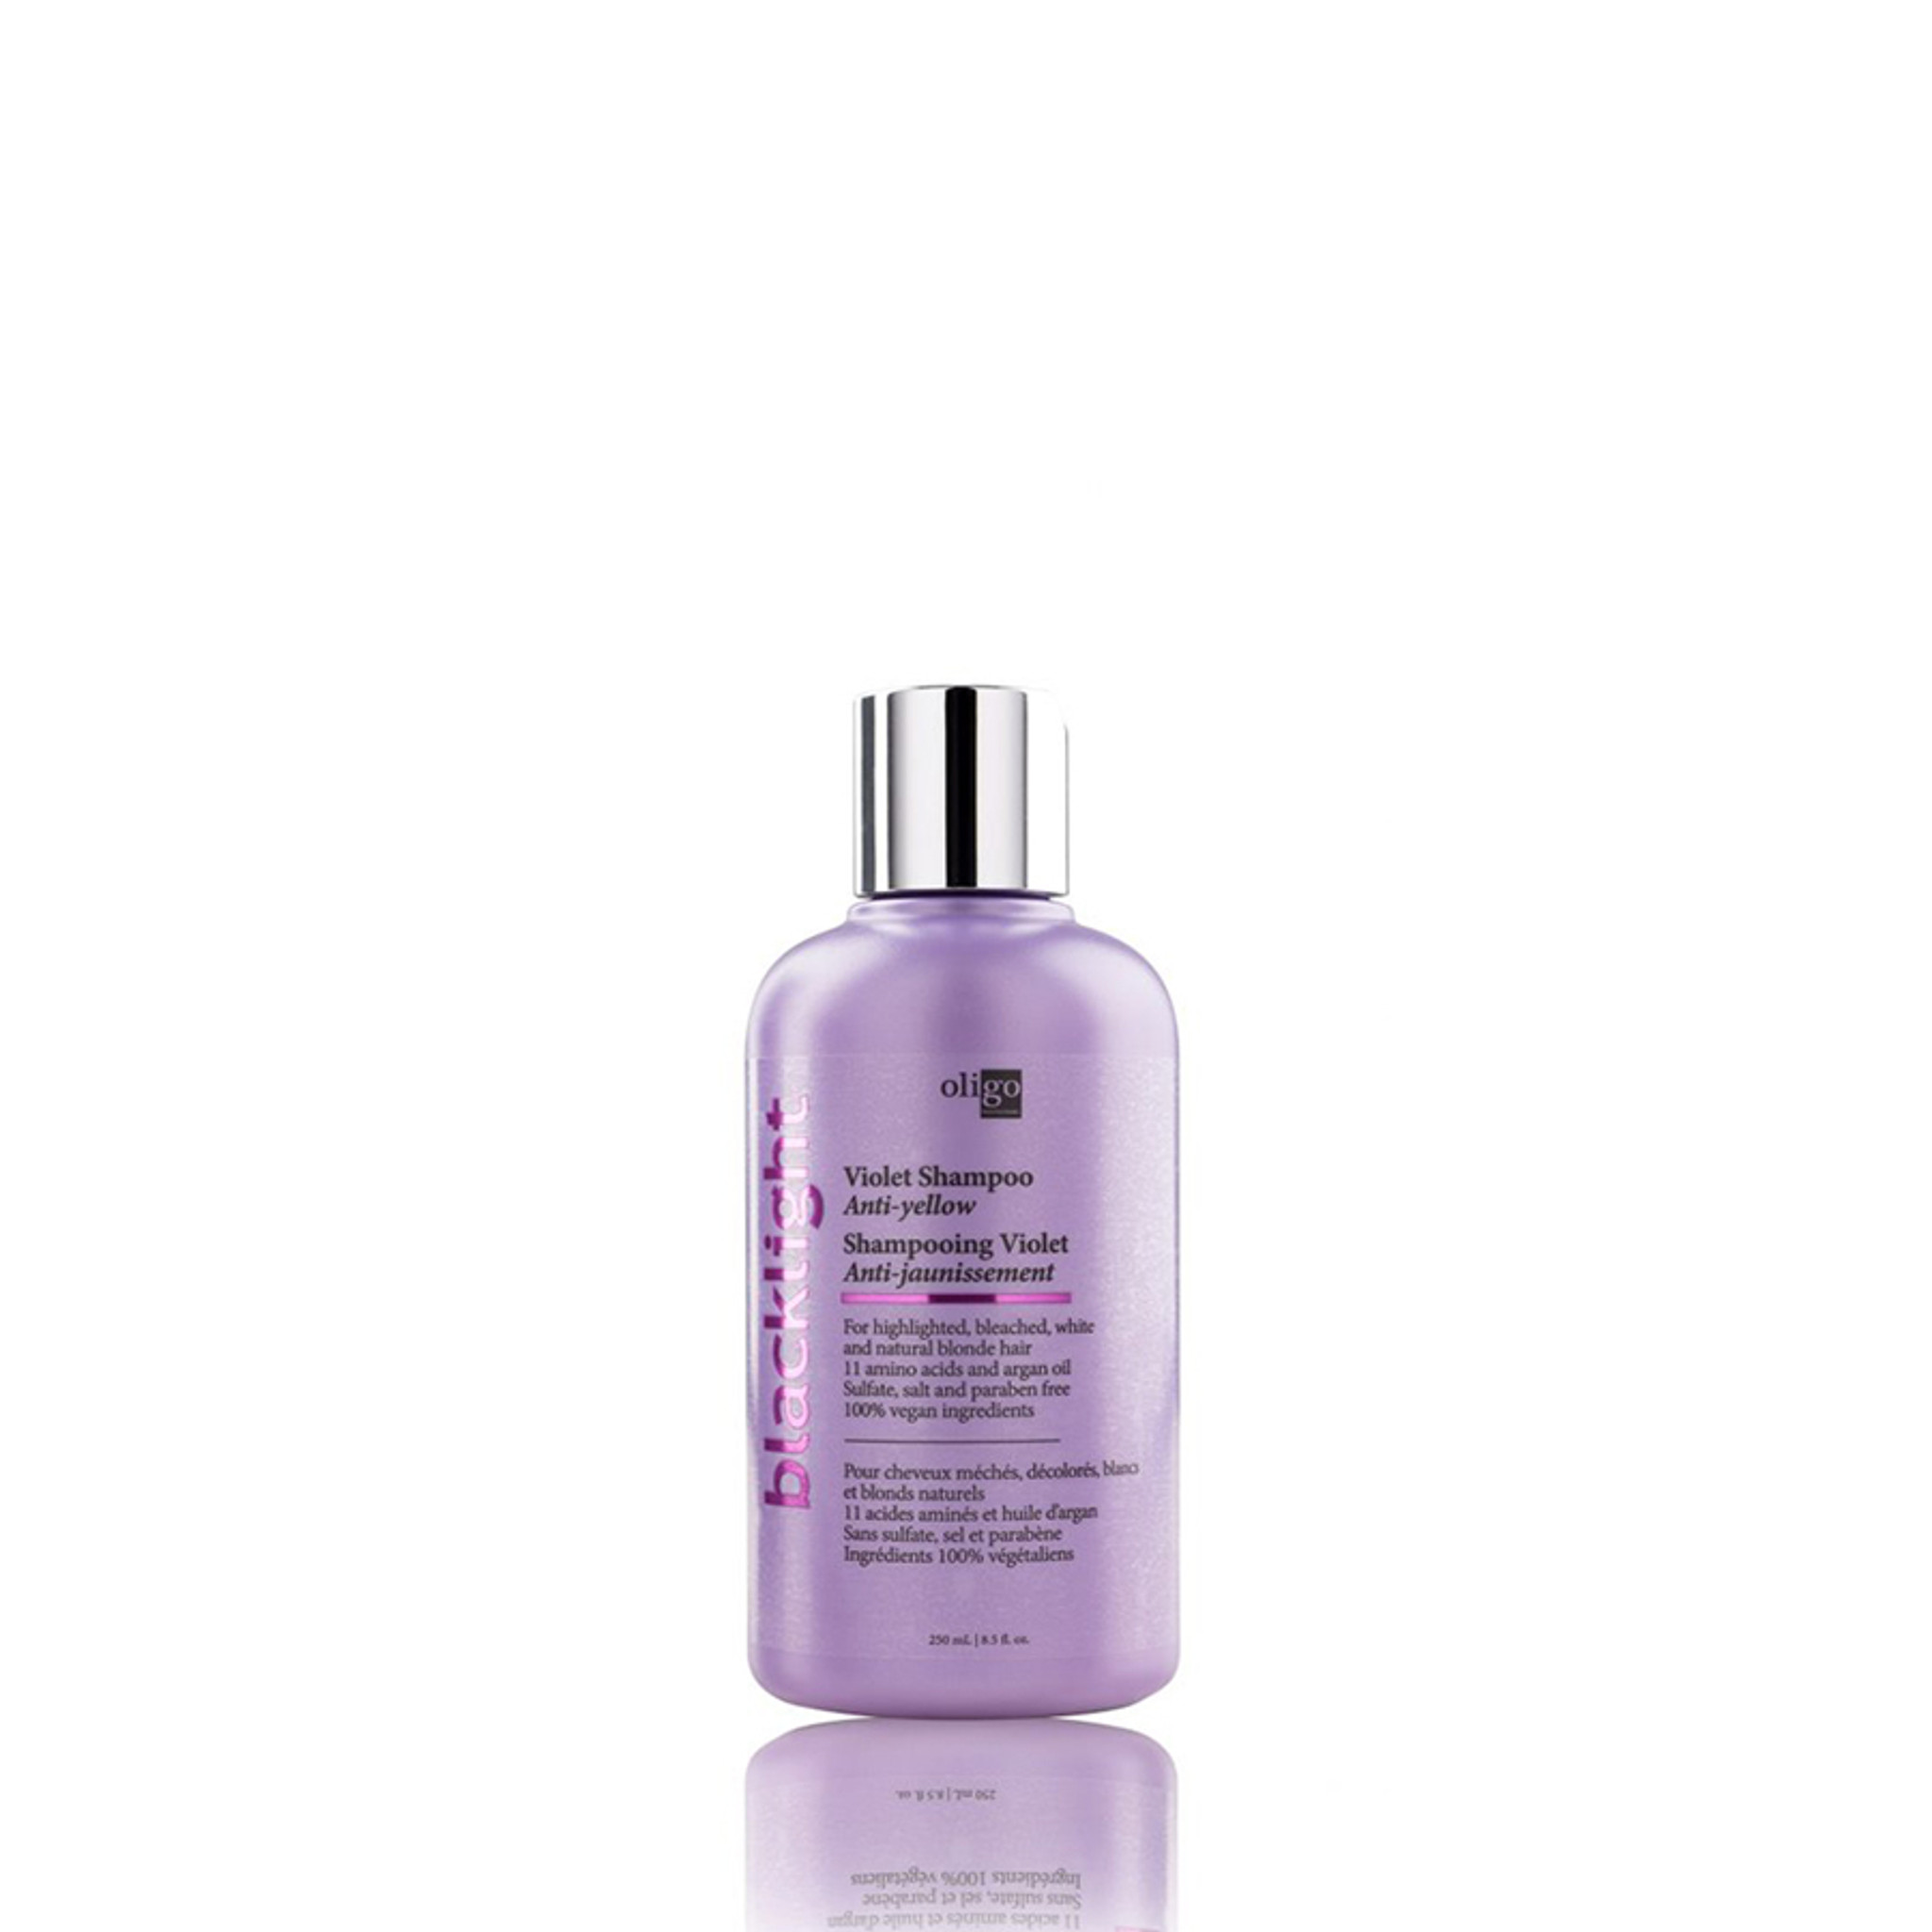 Oligo Pro Blacklight Violet (Anti-Yellow) Shampoo 250ml by Shop Salon Support - official distributor of Oligo Blacklight Professionnel Professional Hair Products, Hair Lightening System, Blonde Shampoo and Conditioner. Salon Support are Hair & Barber Barbershop Trade Wholesale Hairdressing Supplies Melbourne Australia